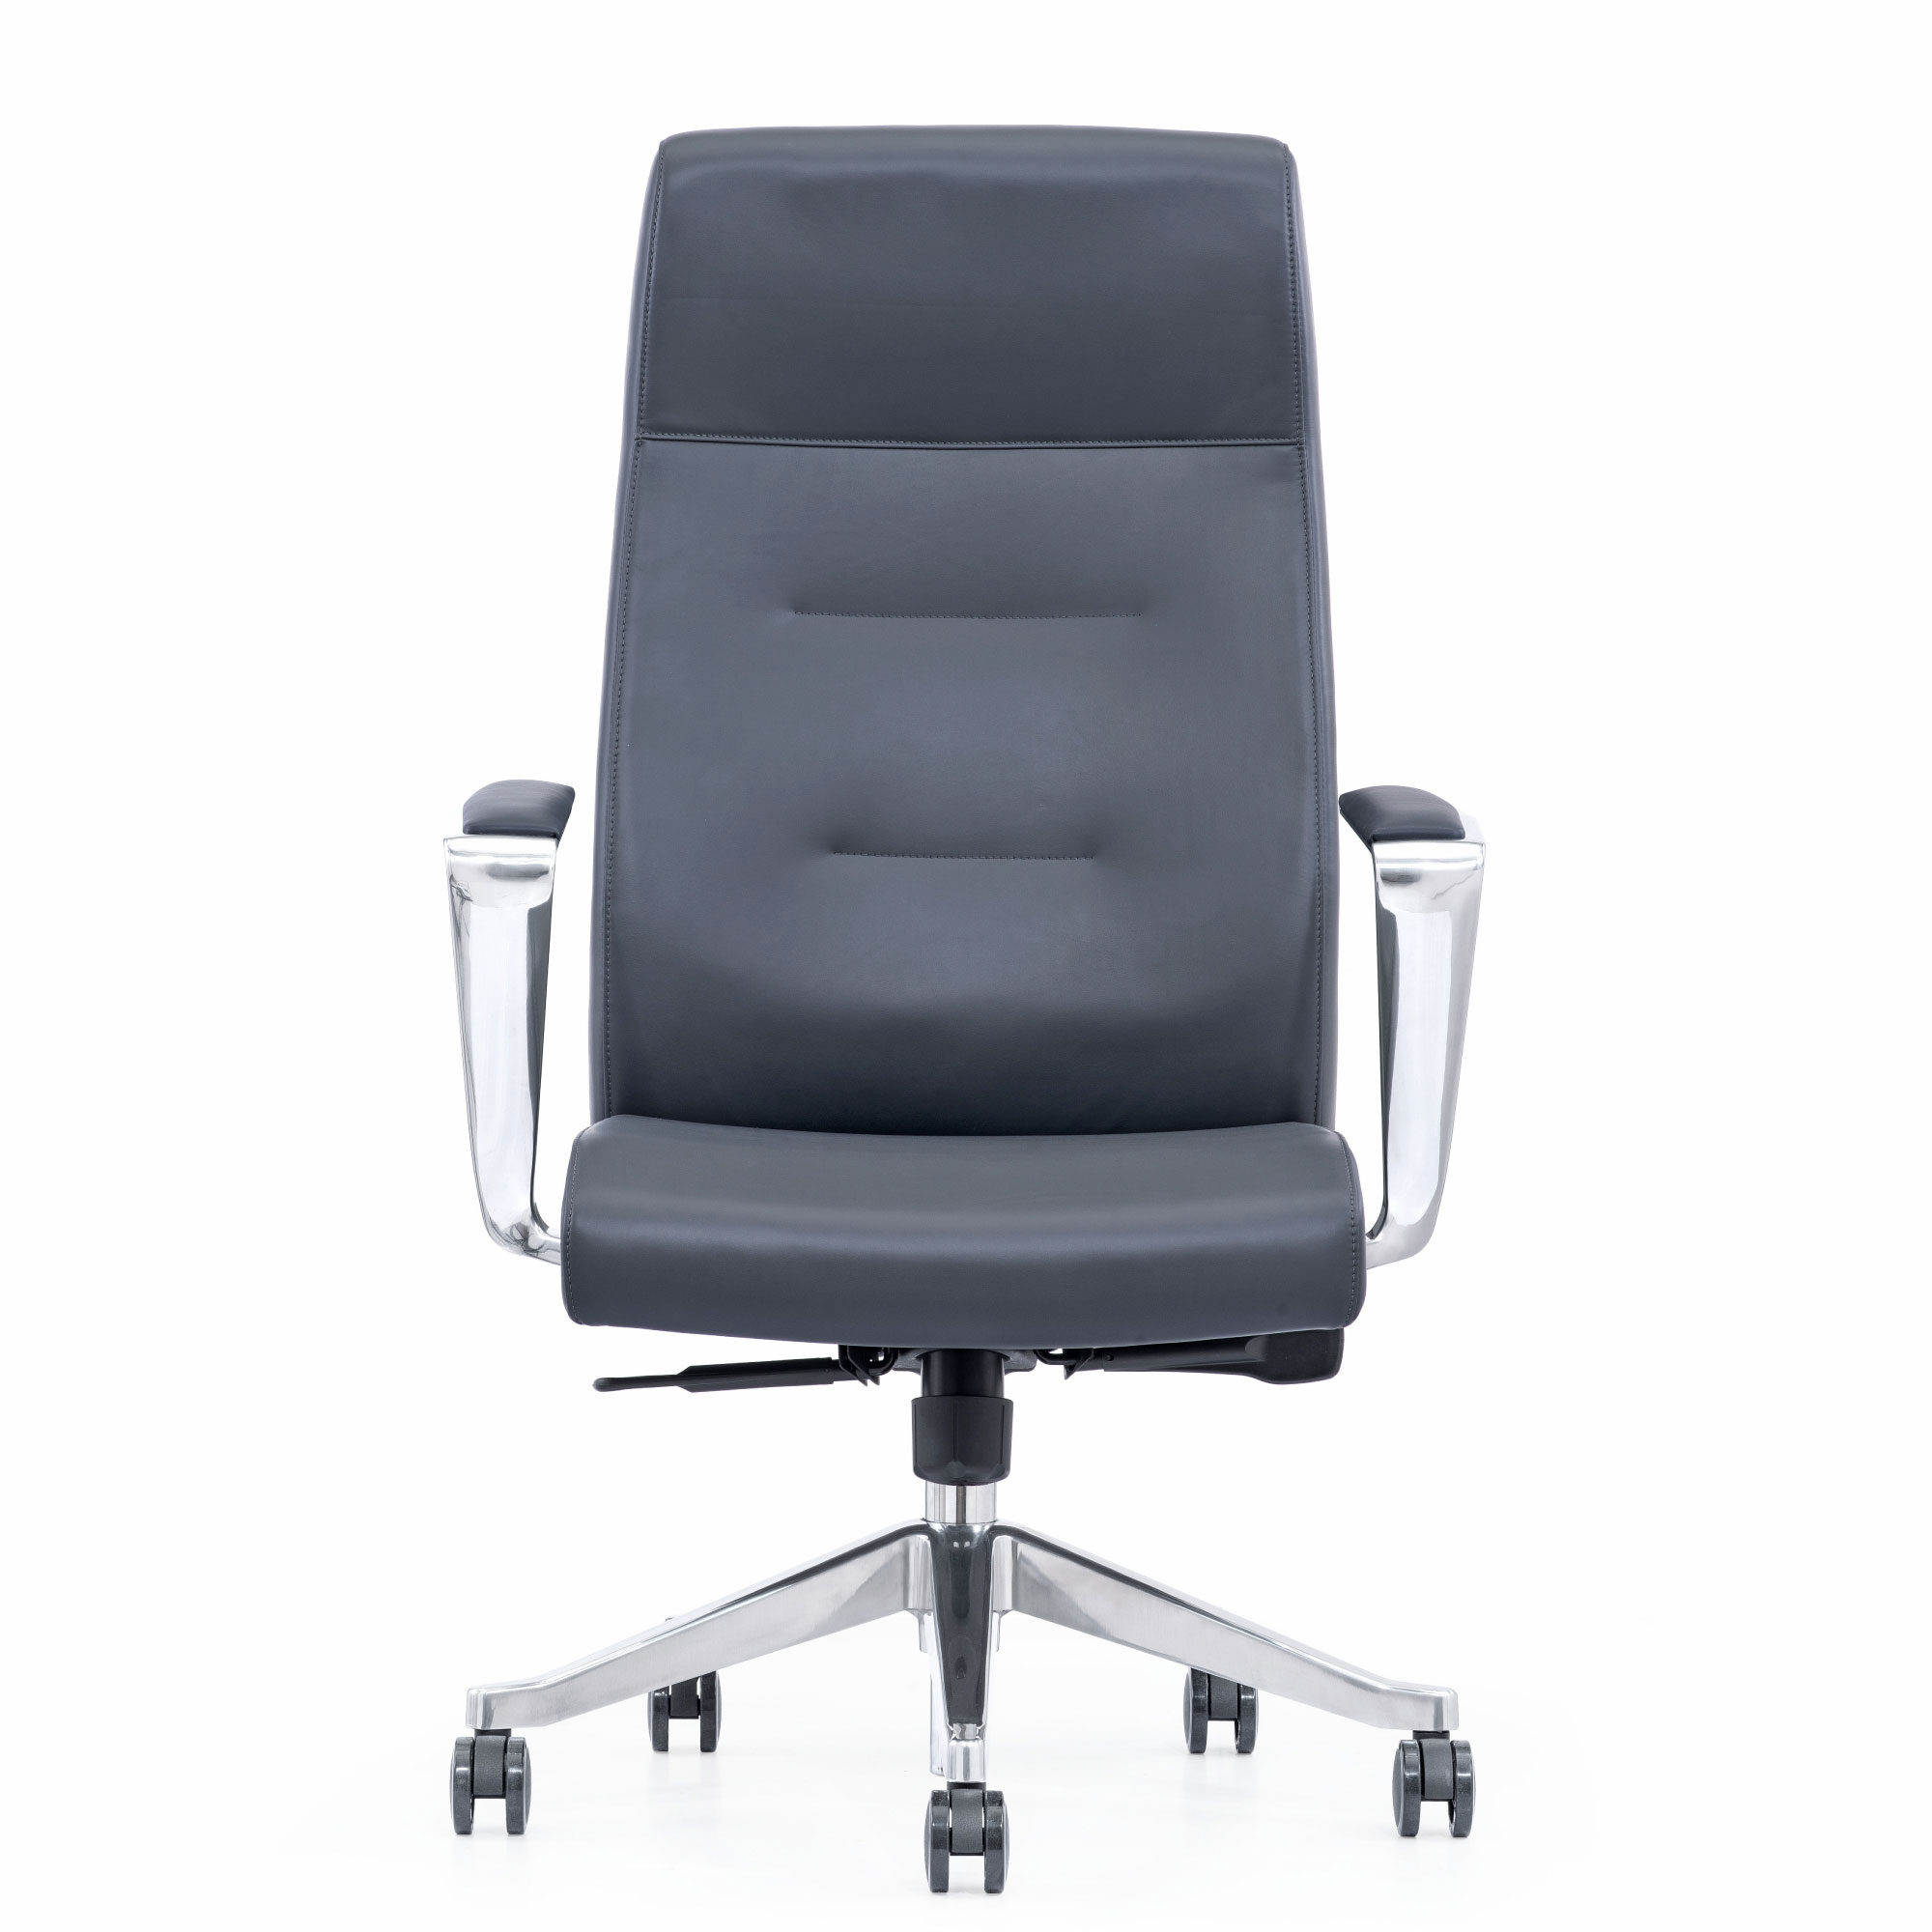 Gray Leather Executive Chair For Home Office